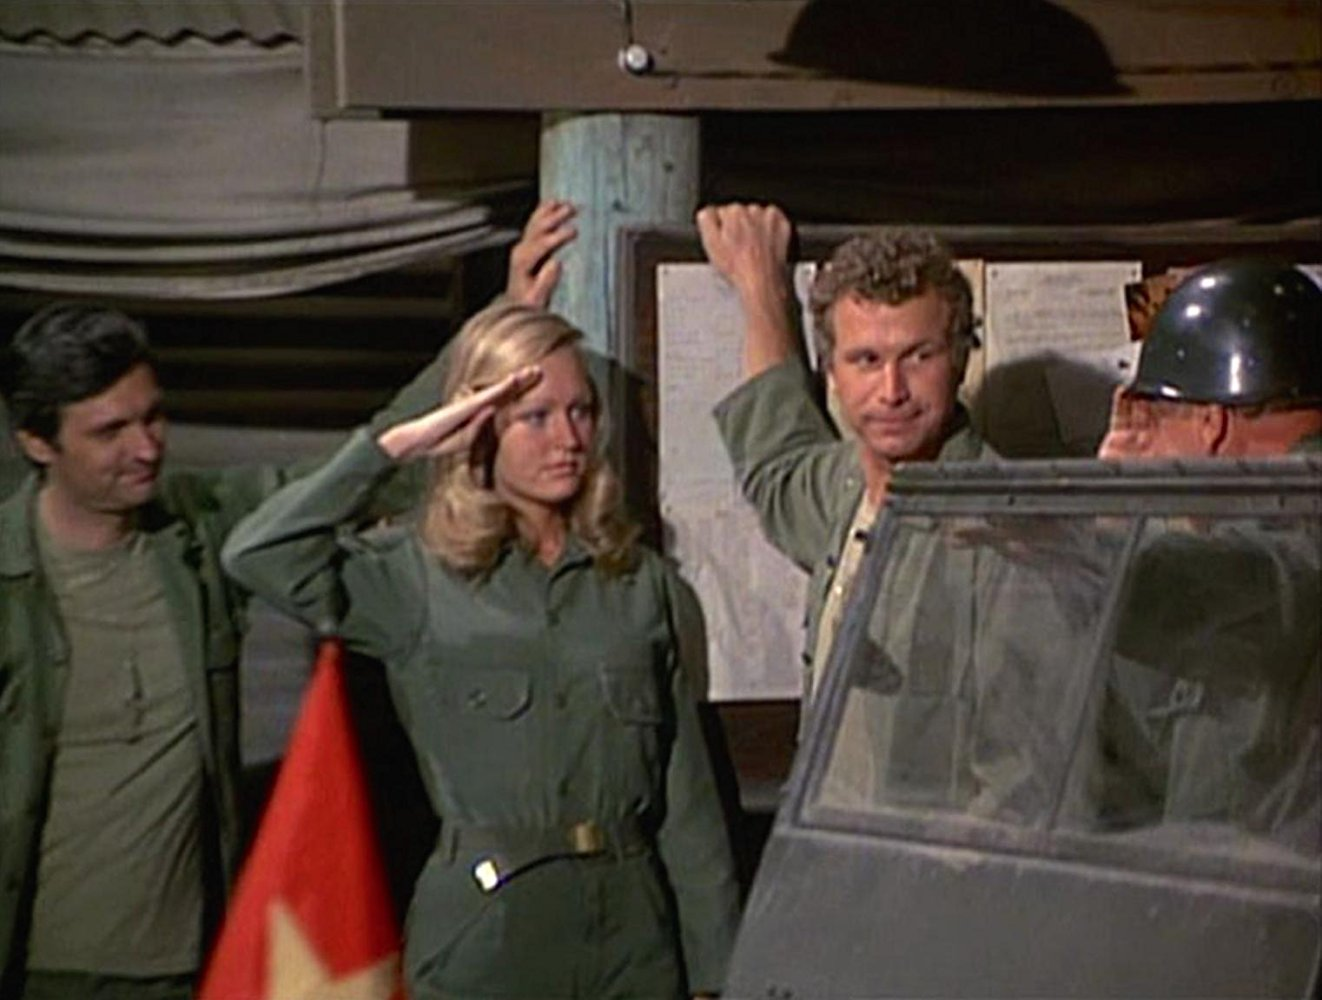 Sheila Lauritsen movies list and roles (M*A*S*H - Season ...